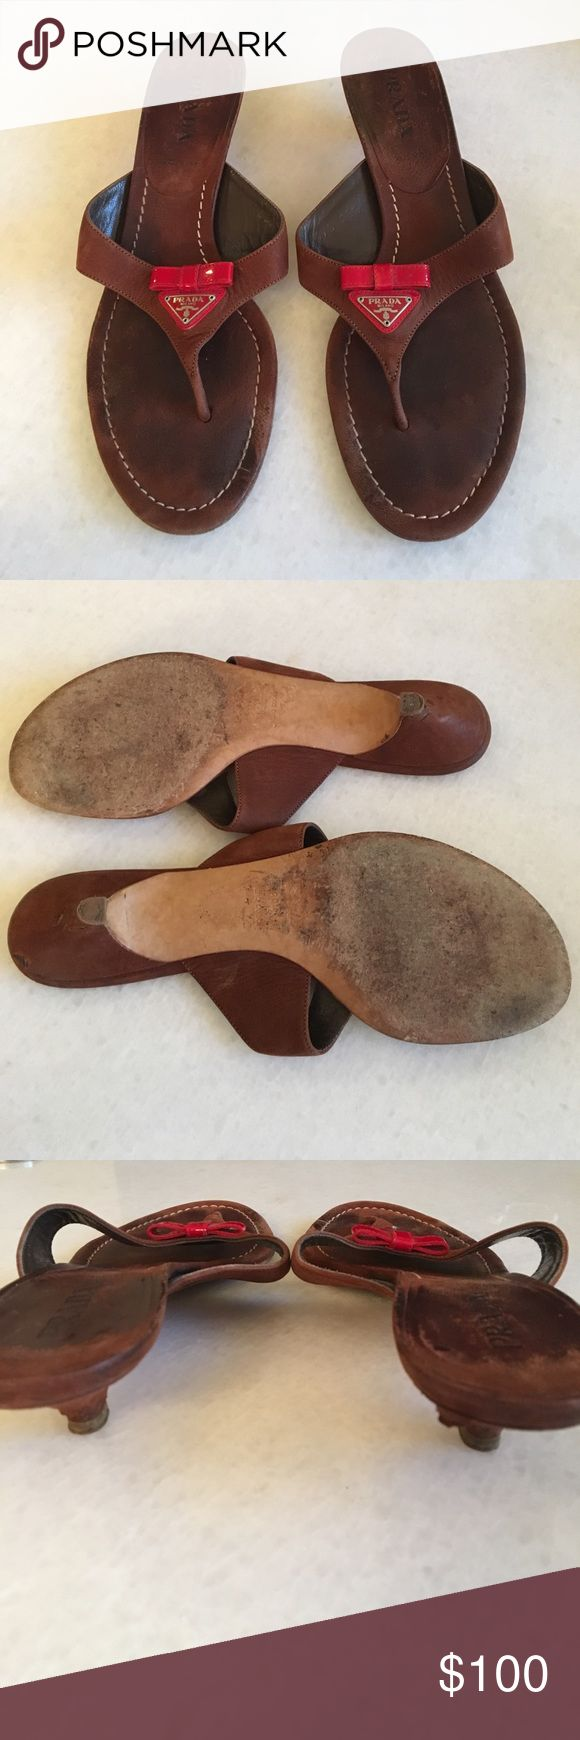 Prada Flip Flop Sandler in Brown Leather These Sandler are extremely comfortable and have a red patten leather bow. 📦 If you live in Chicago you could do a pick up or try on. Please ask any questions.. Prada Shoes Sandals